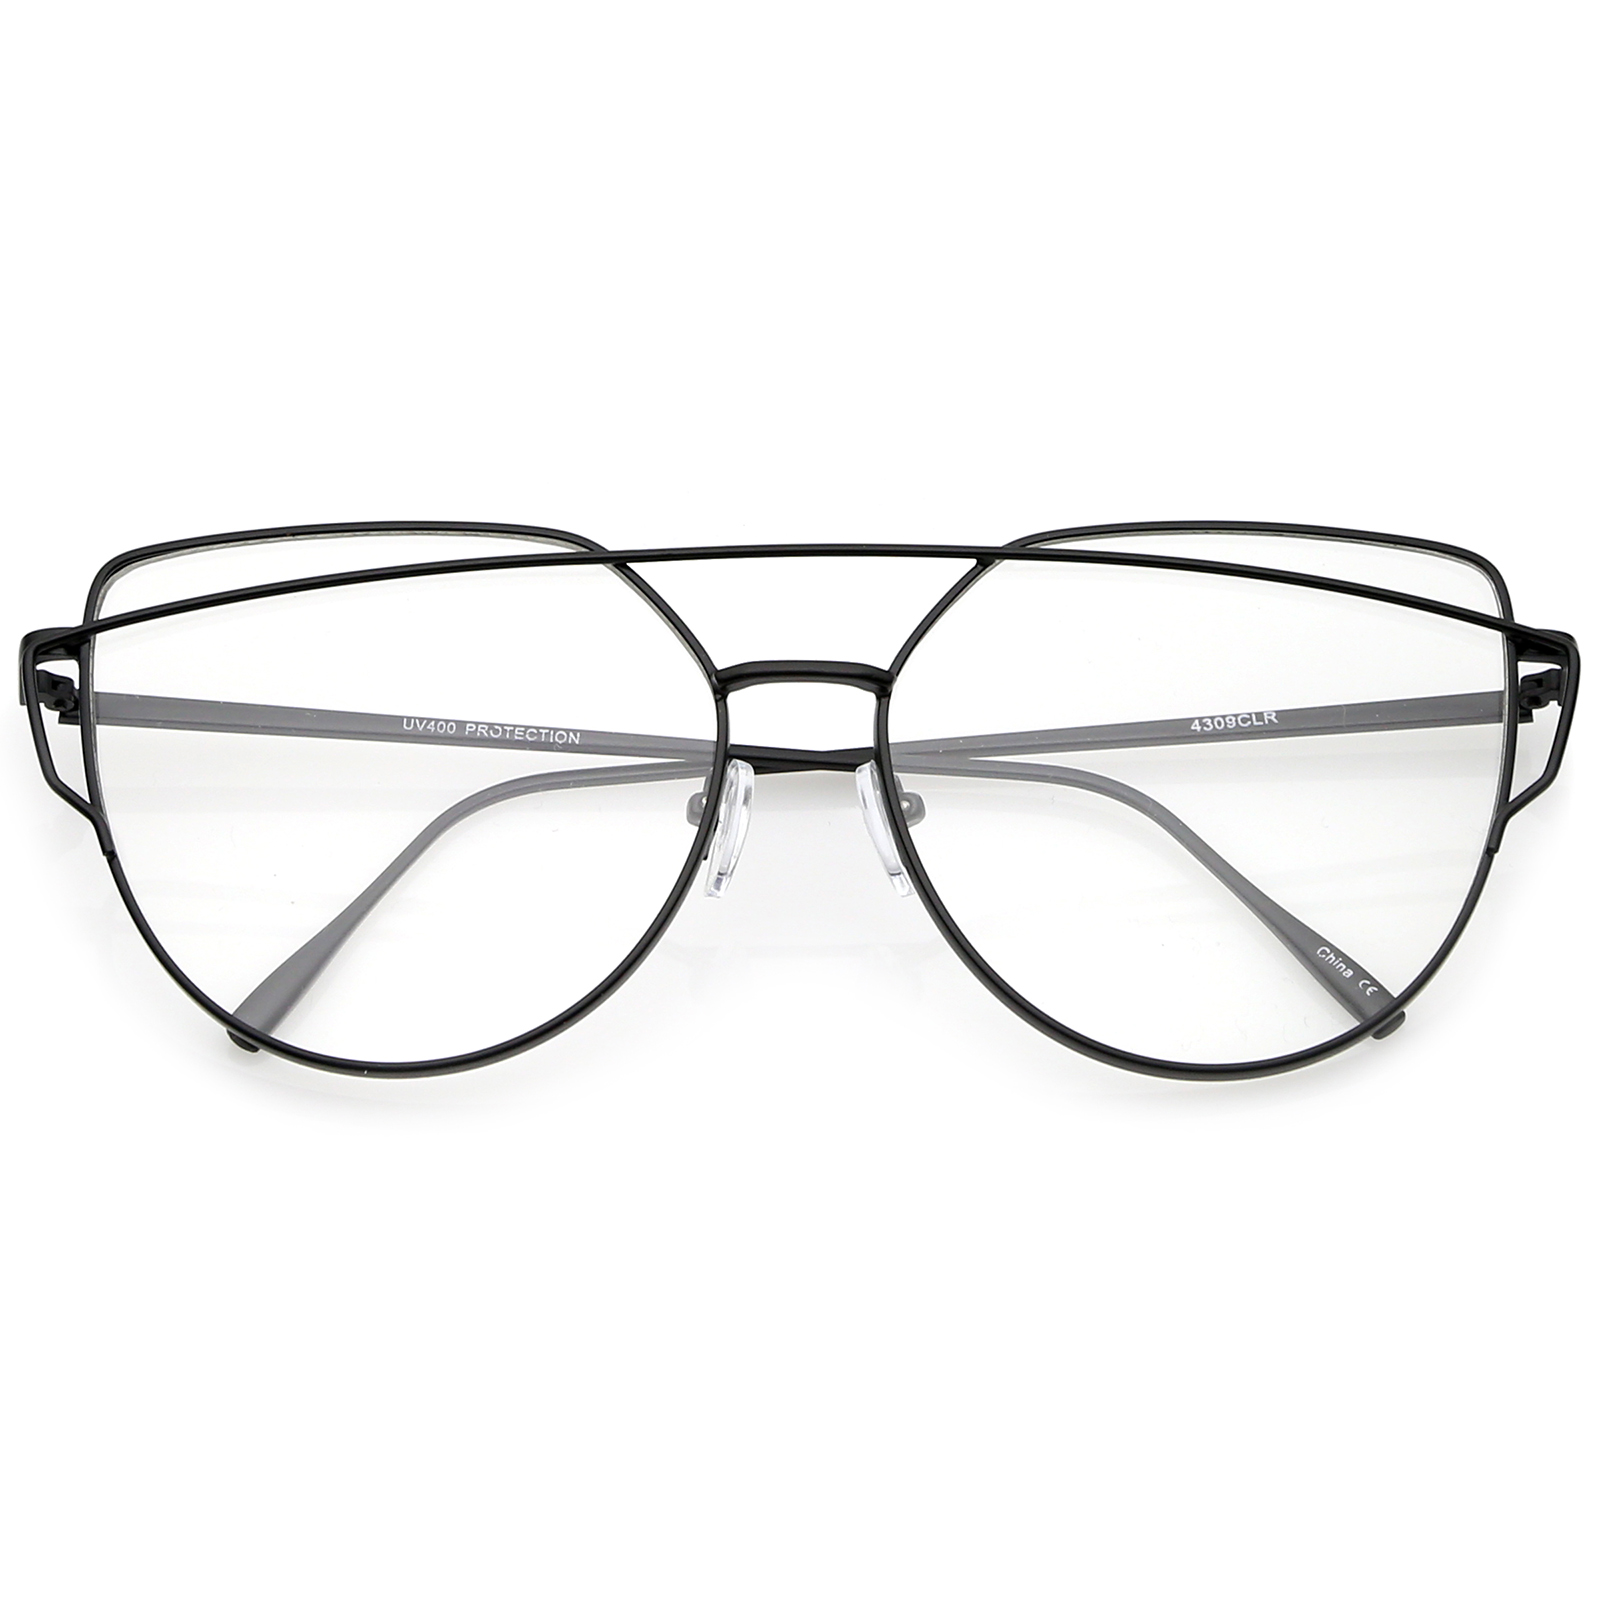 Sunglassla Oversize Metal Frame Thin Temple Clear Flat Lens Aviator ...